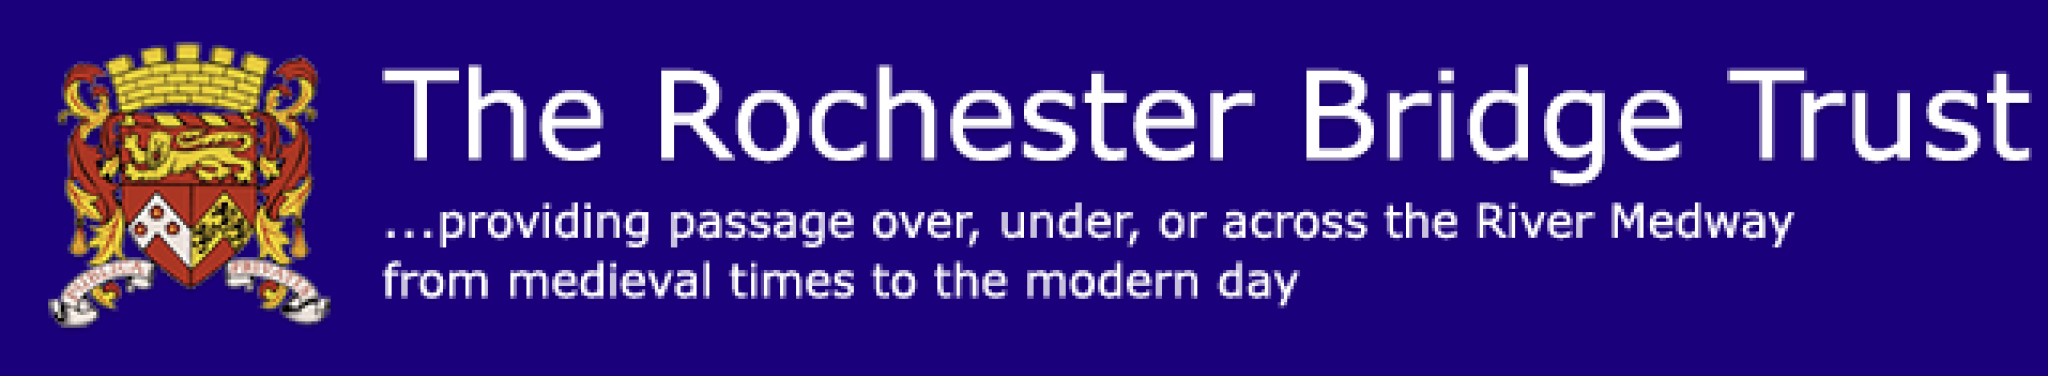 The_Rochester_Bridge_Trust_Logo.png